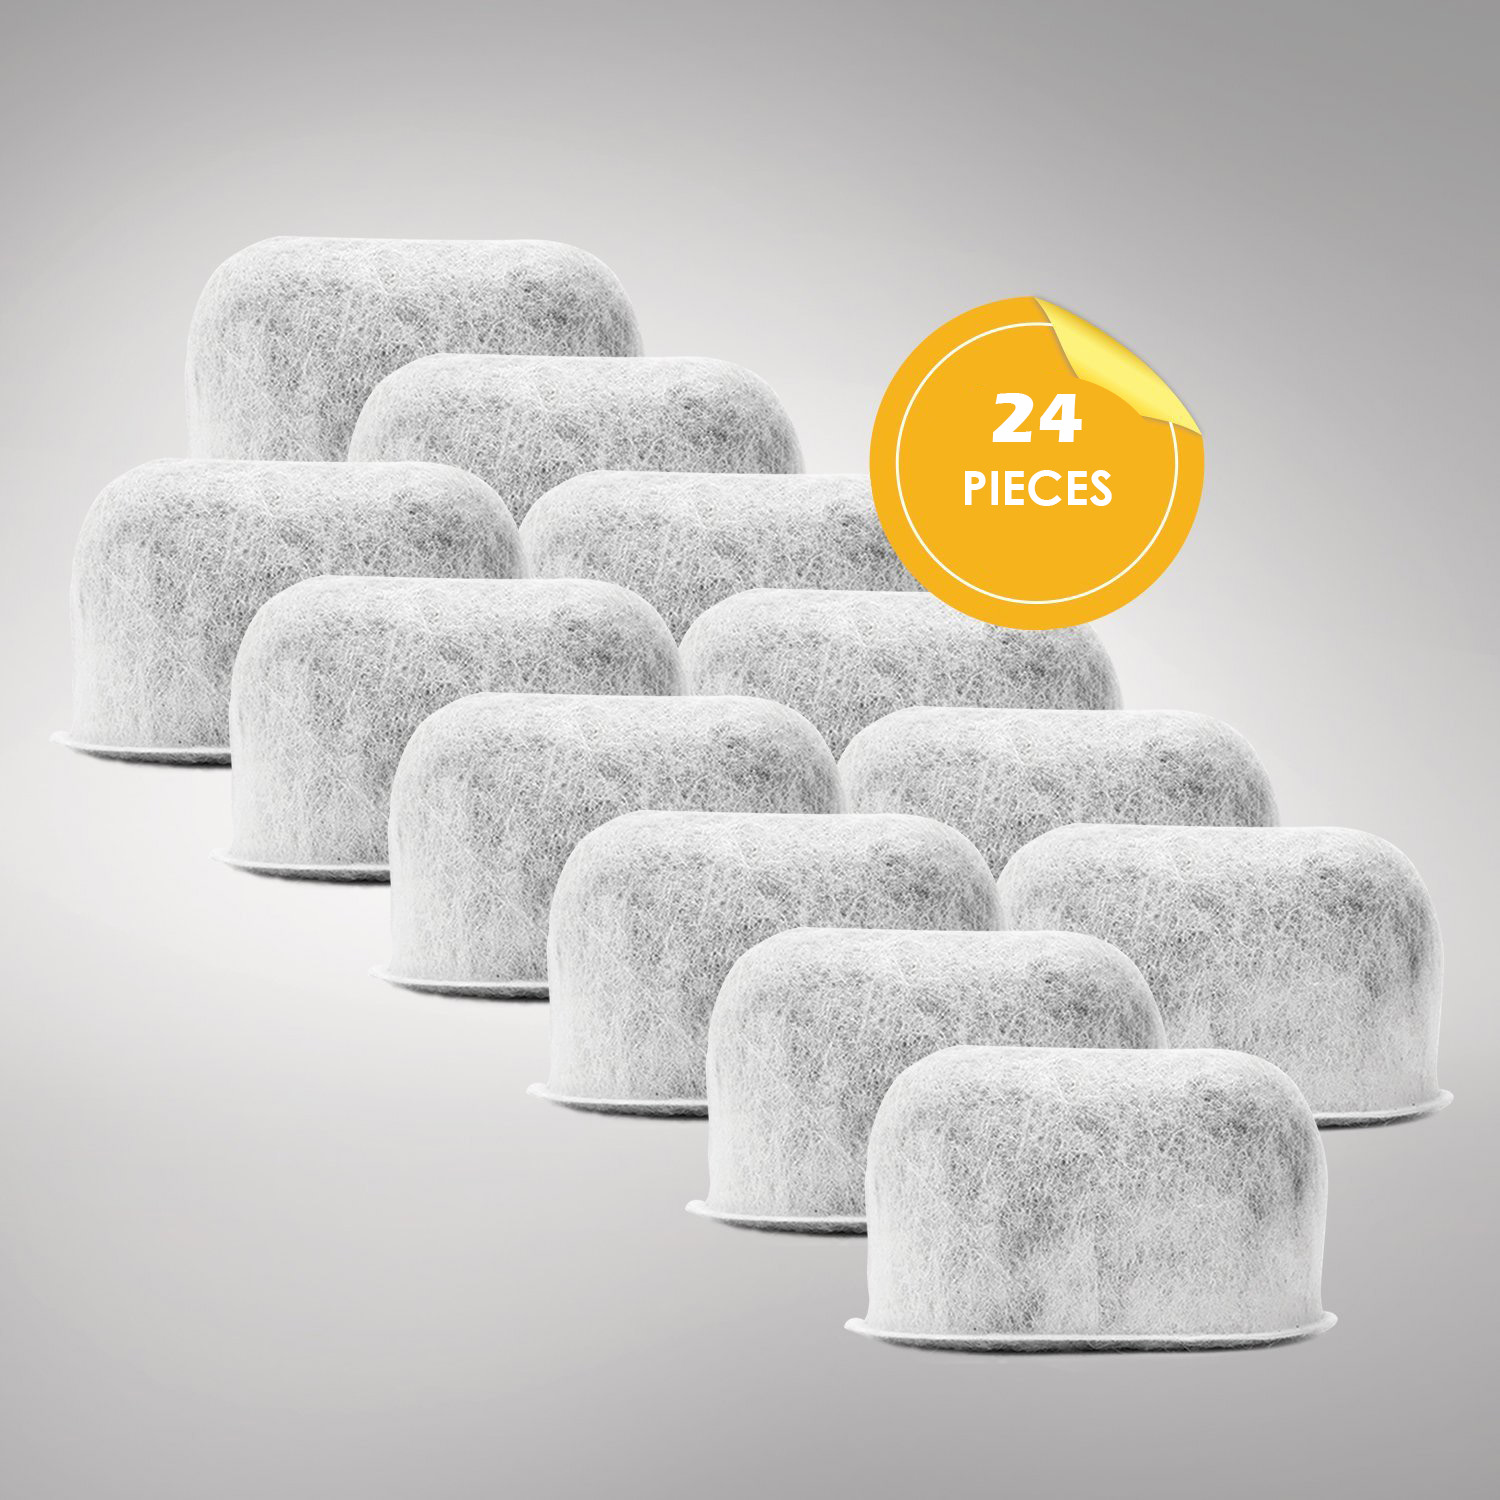 24 Replacement Charcoal Water Filters for Cuisinart Coffee Machines, White by